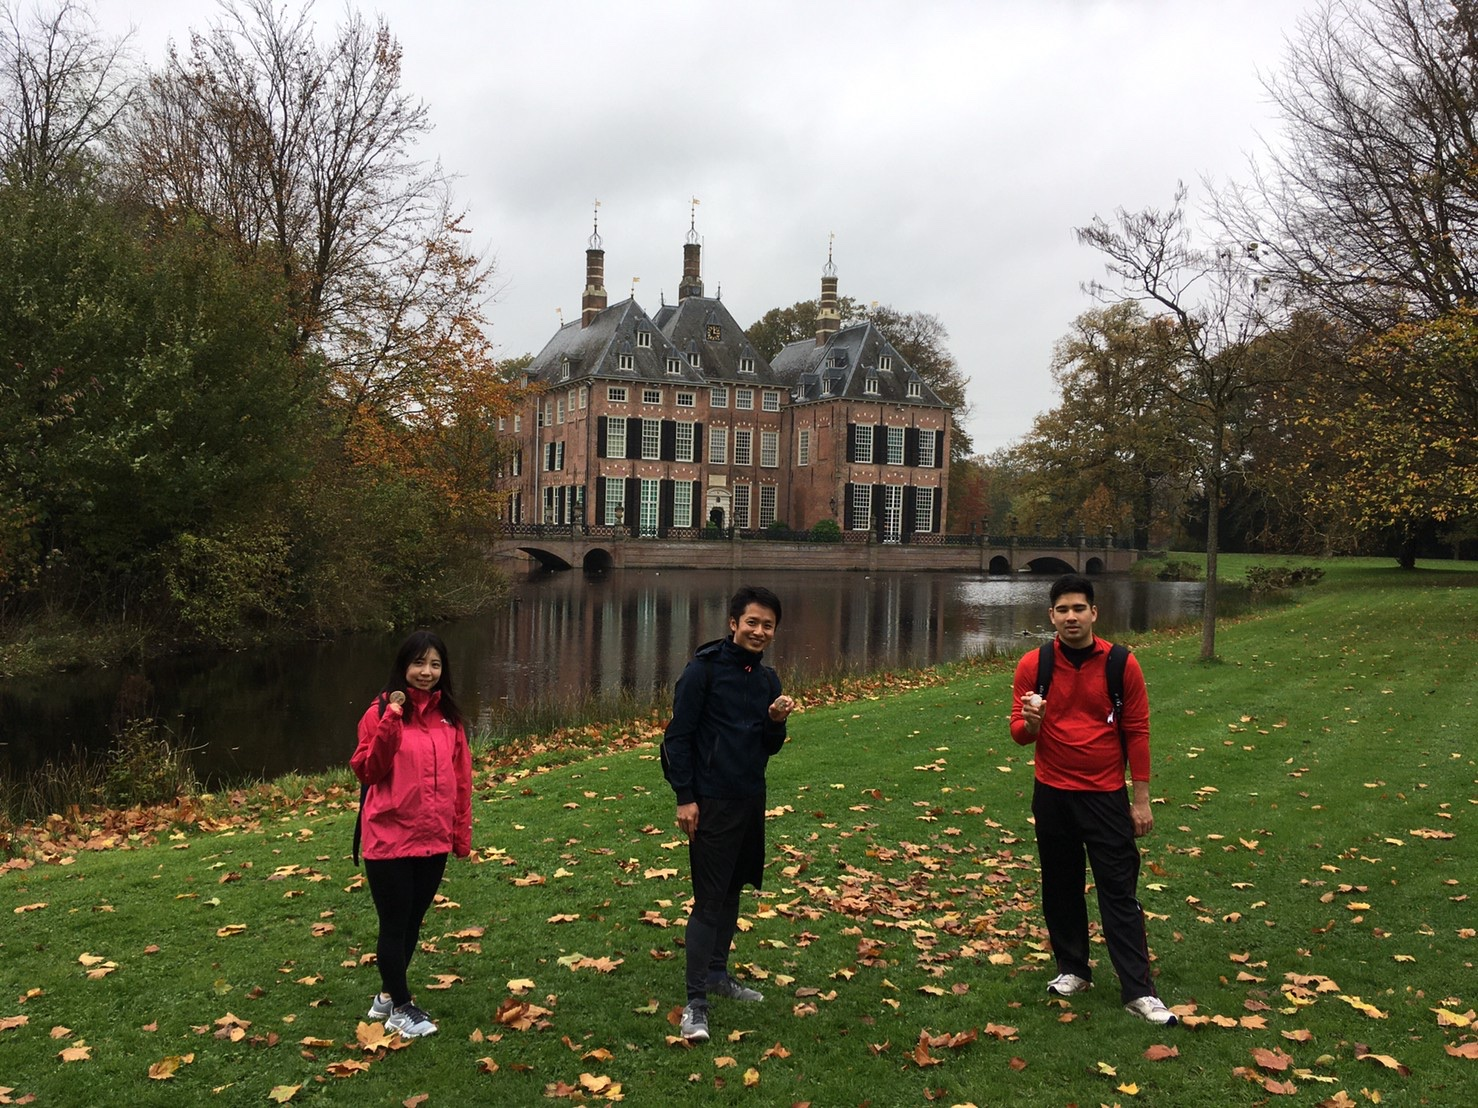 Photo Provider:T.S.・Place:the Hague, the Netherlands・Comment:On 1 November, we walked in the Hague and enjoyed the beautiful view so much. We hope a friendship between Nijmegen and Higashi-matsuyama City will continue.